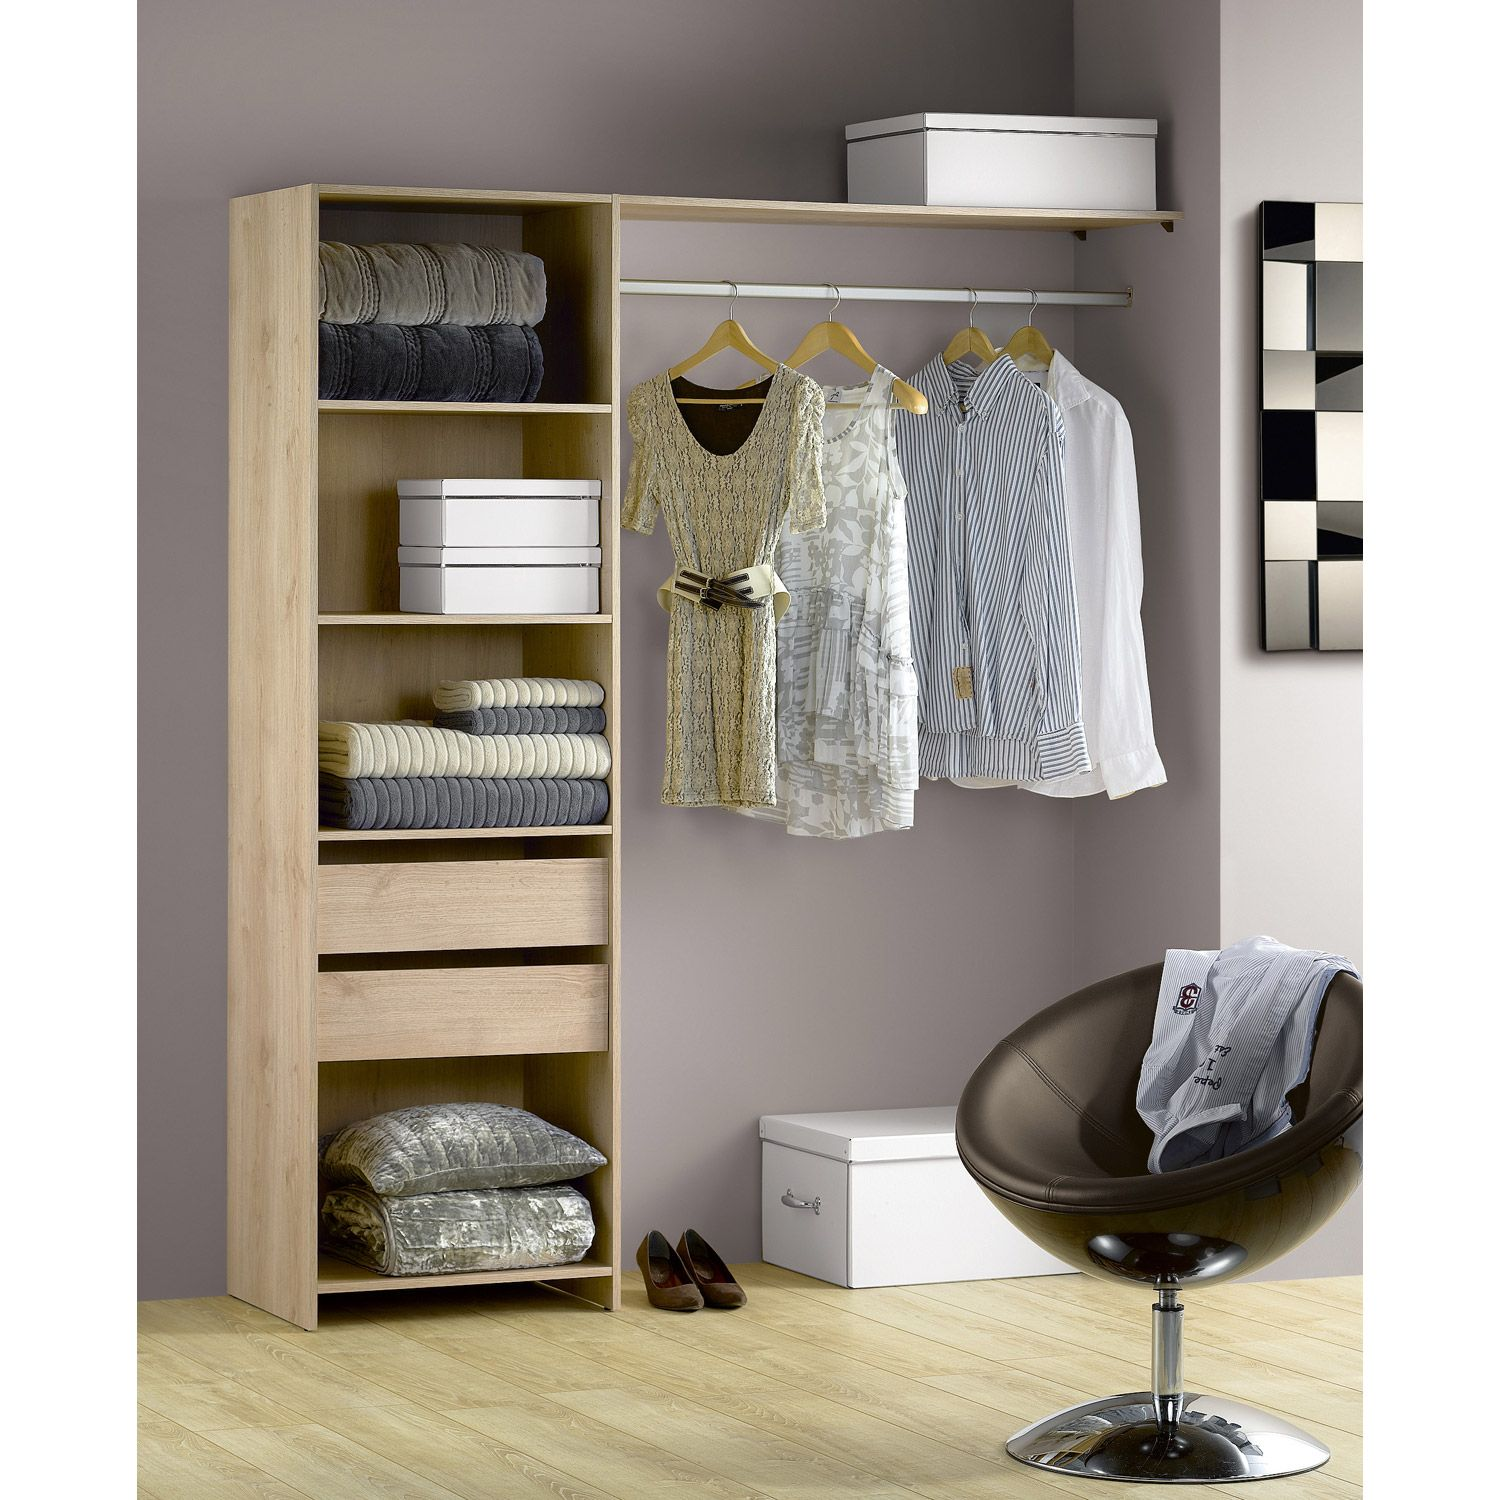 kit dressing ch ne naturel modul 39 kit h204 x l180 x p45 cm 80 leroy merlin dressing. Black Bedroom Furniture Sets. Home Design Ideas